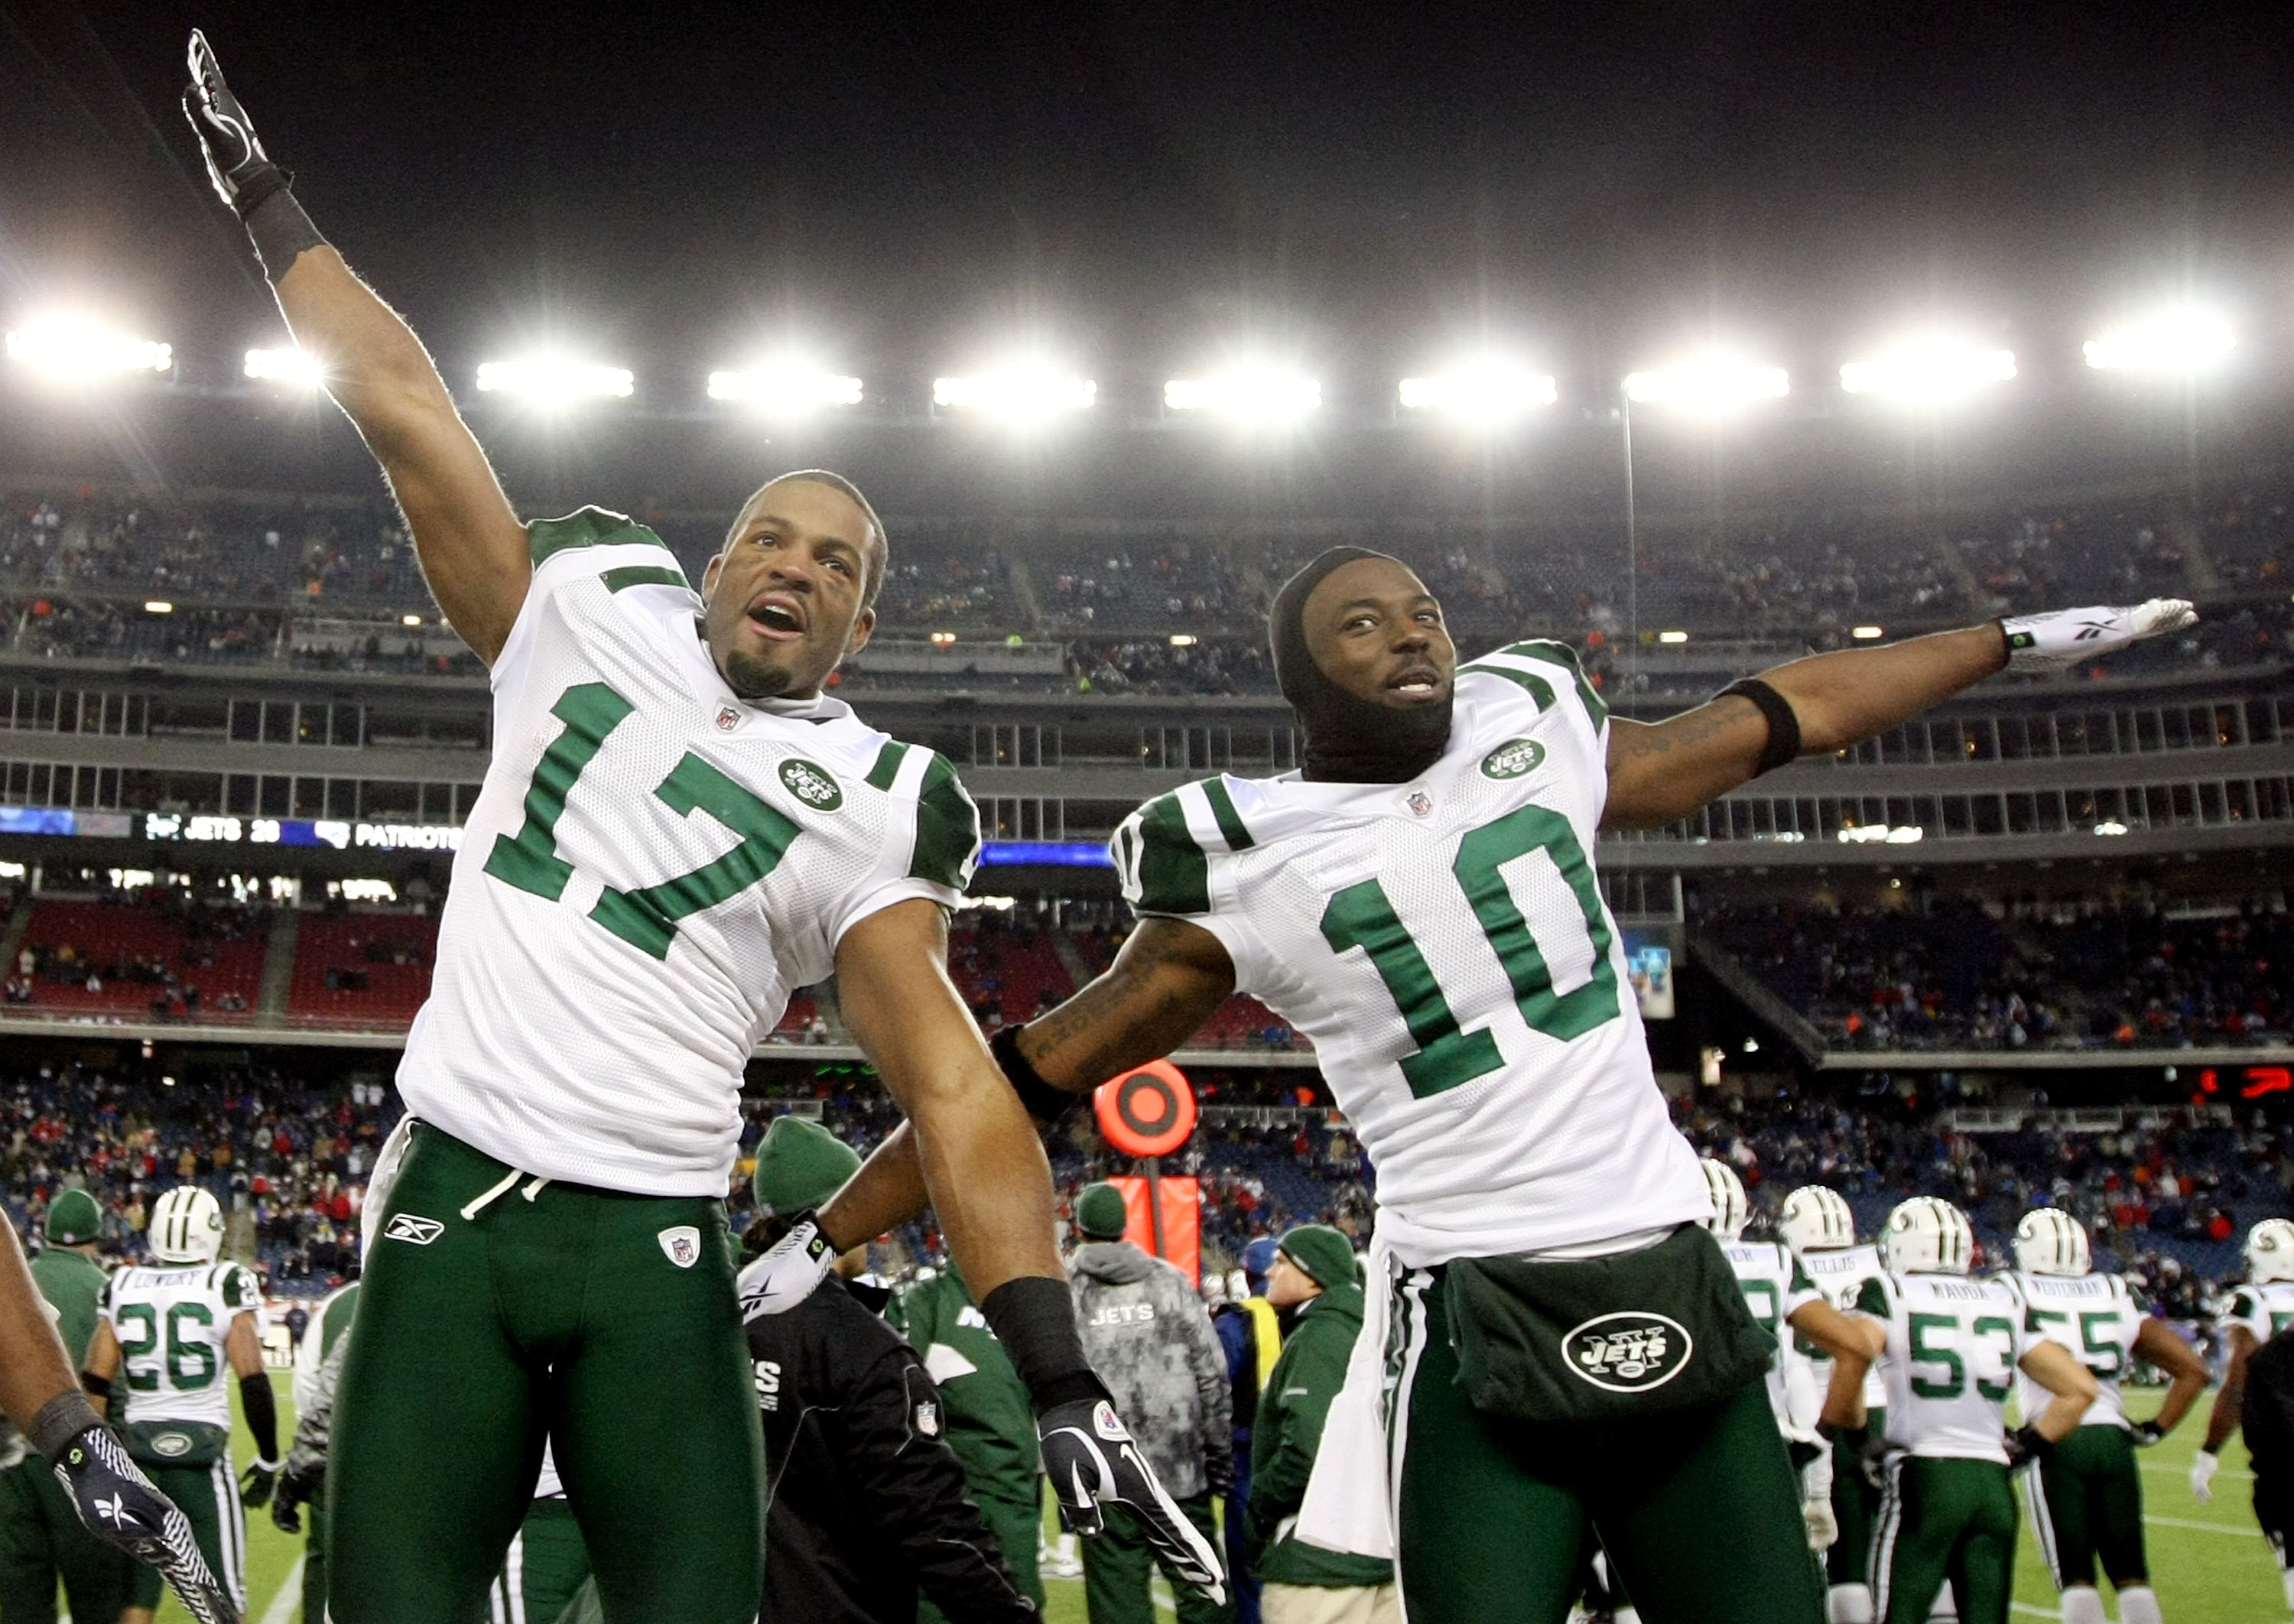 The Jets Finally Found Success at Wide Receiver, Acquiring Braylon Edwards And Santonio Holmes via Trade the Past Two Seasons. Now They're Both Free Agents.